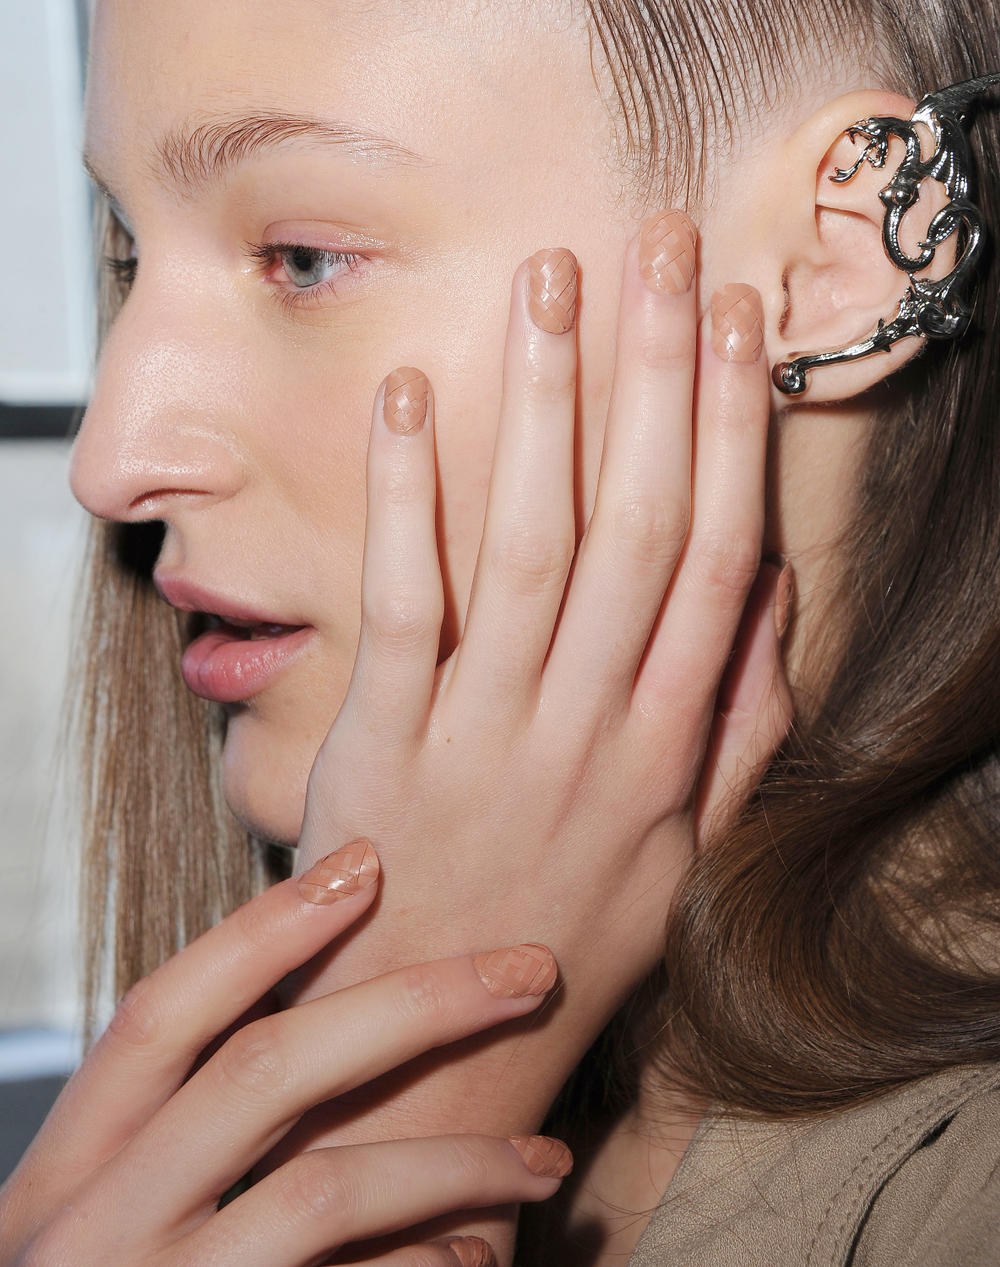 <p>These &ldquo;modern medieval&rdquo; manicures were custom-made by <strong>CND </strong>with a blended peach base and strips of polish hand-woven into the nail for a play on texture and finish.</p> <p><em>Photo courtesy of CND</em></p>